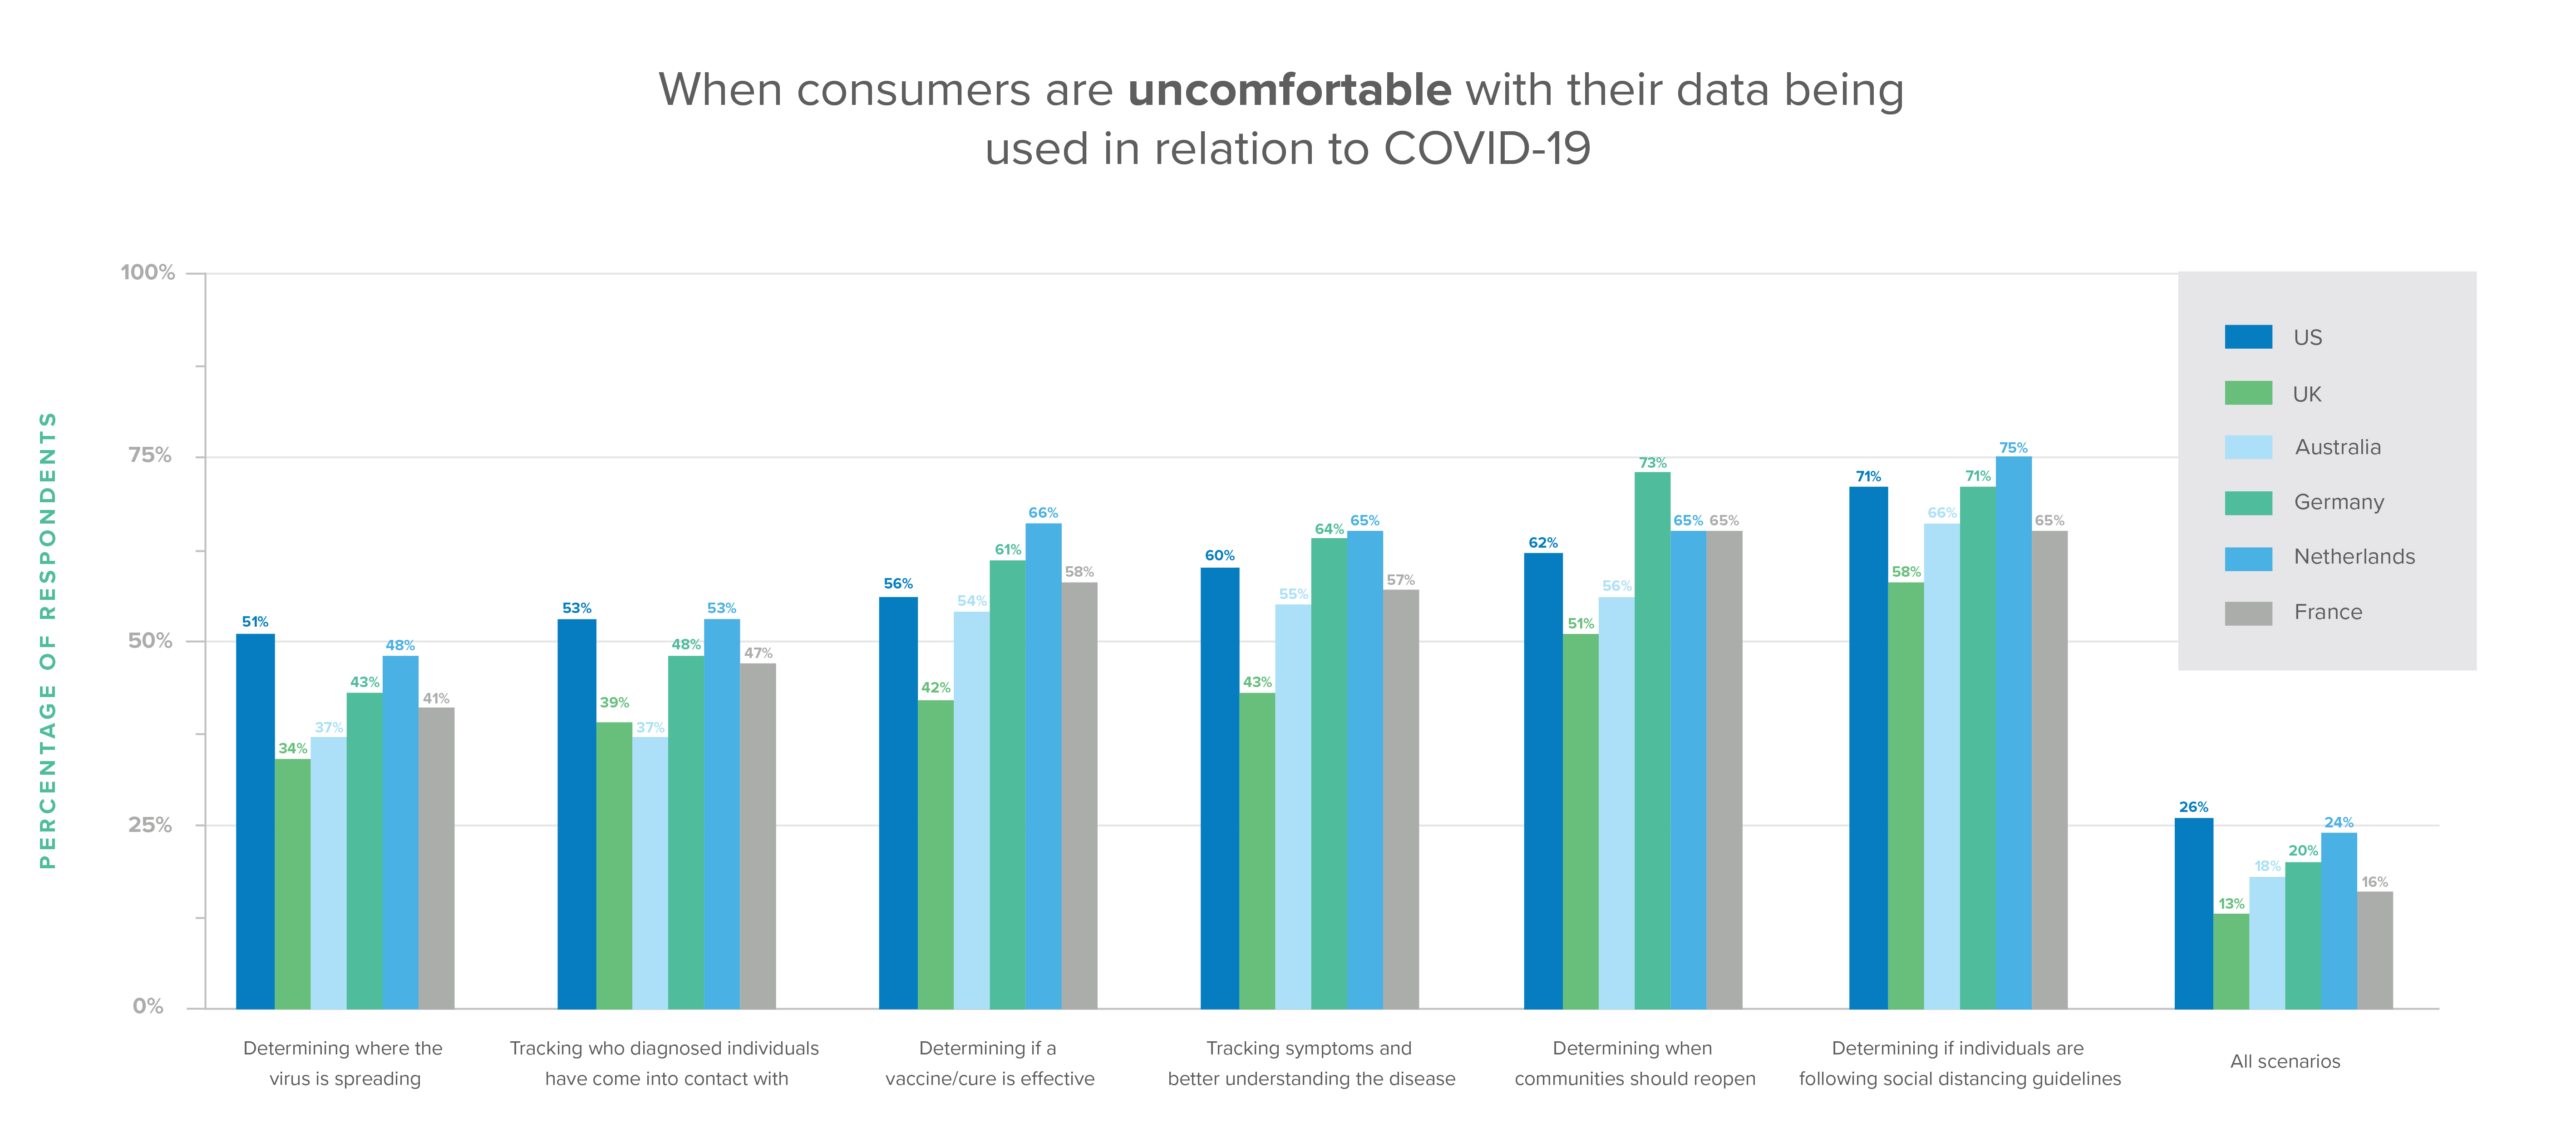 When consumers are uncomfortable with their data being used in relation to COVID-19.